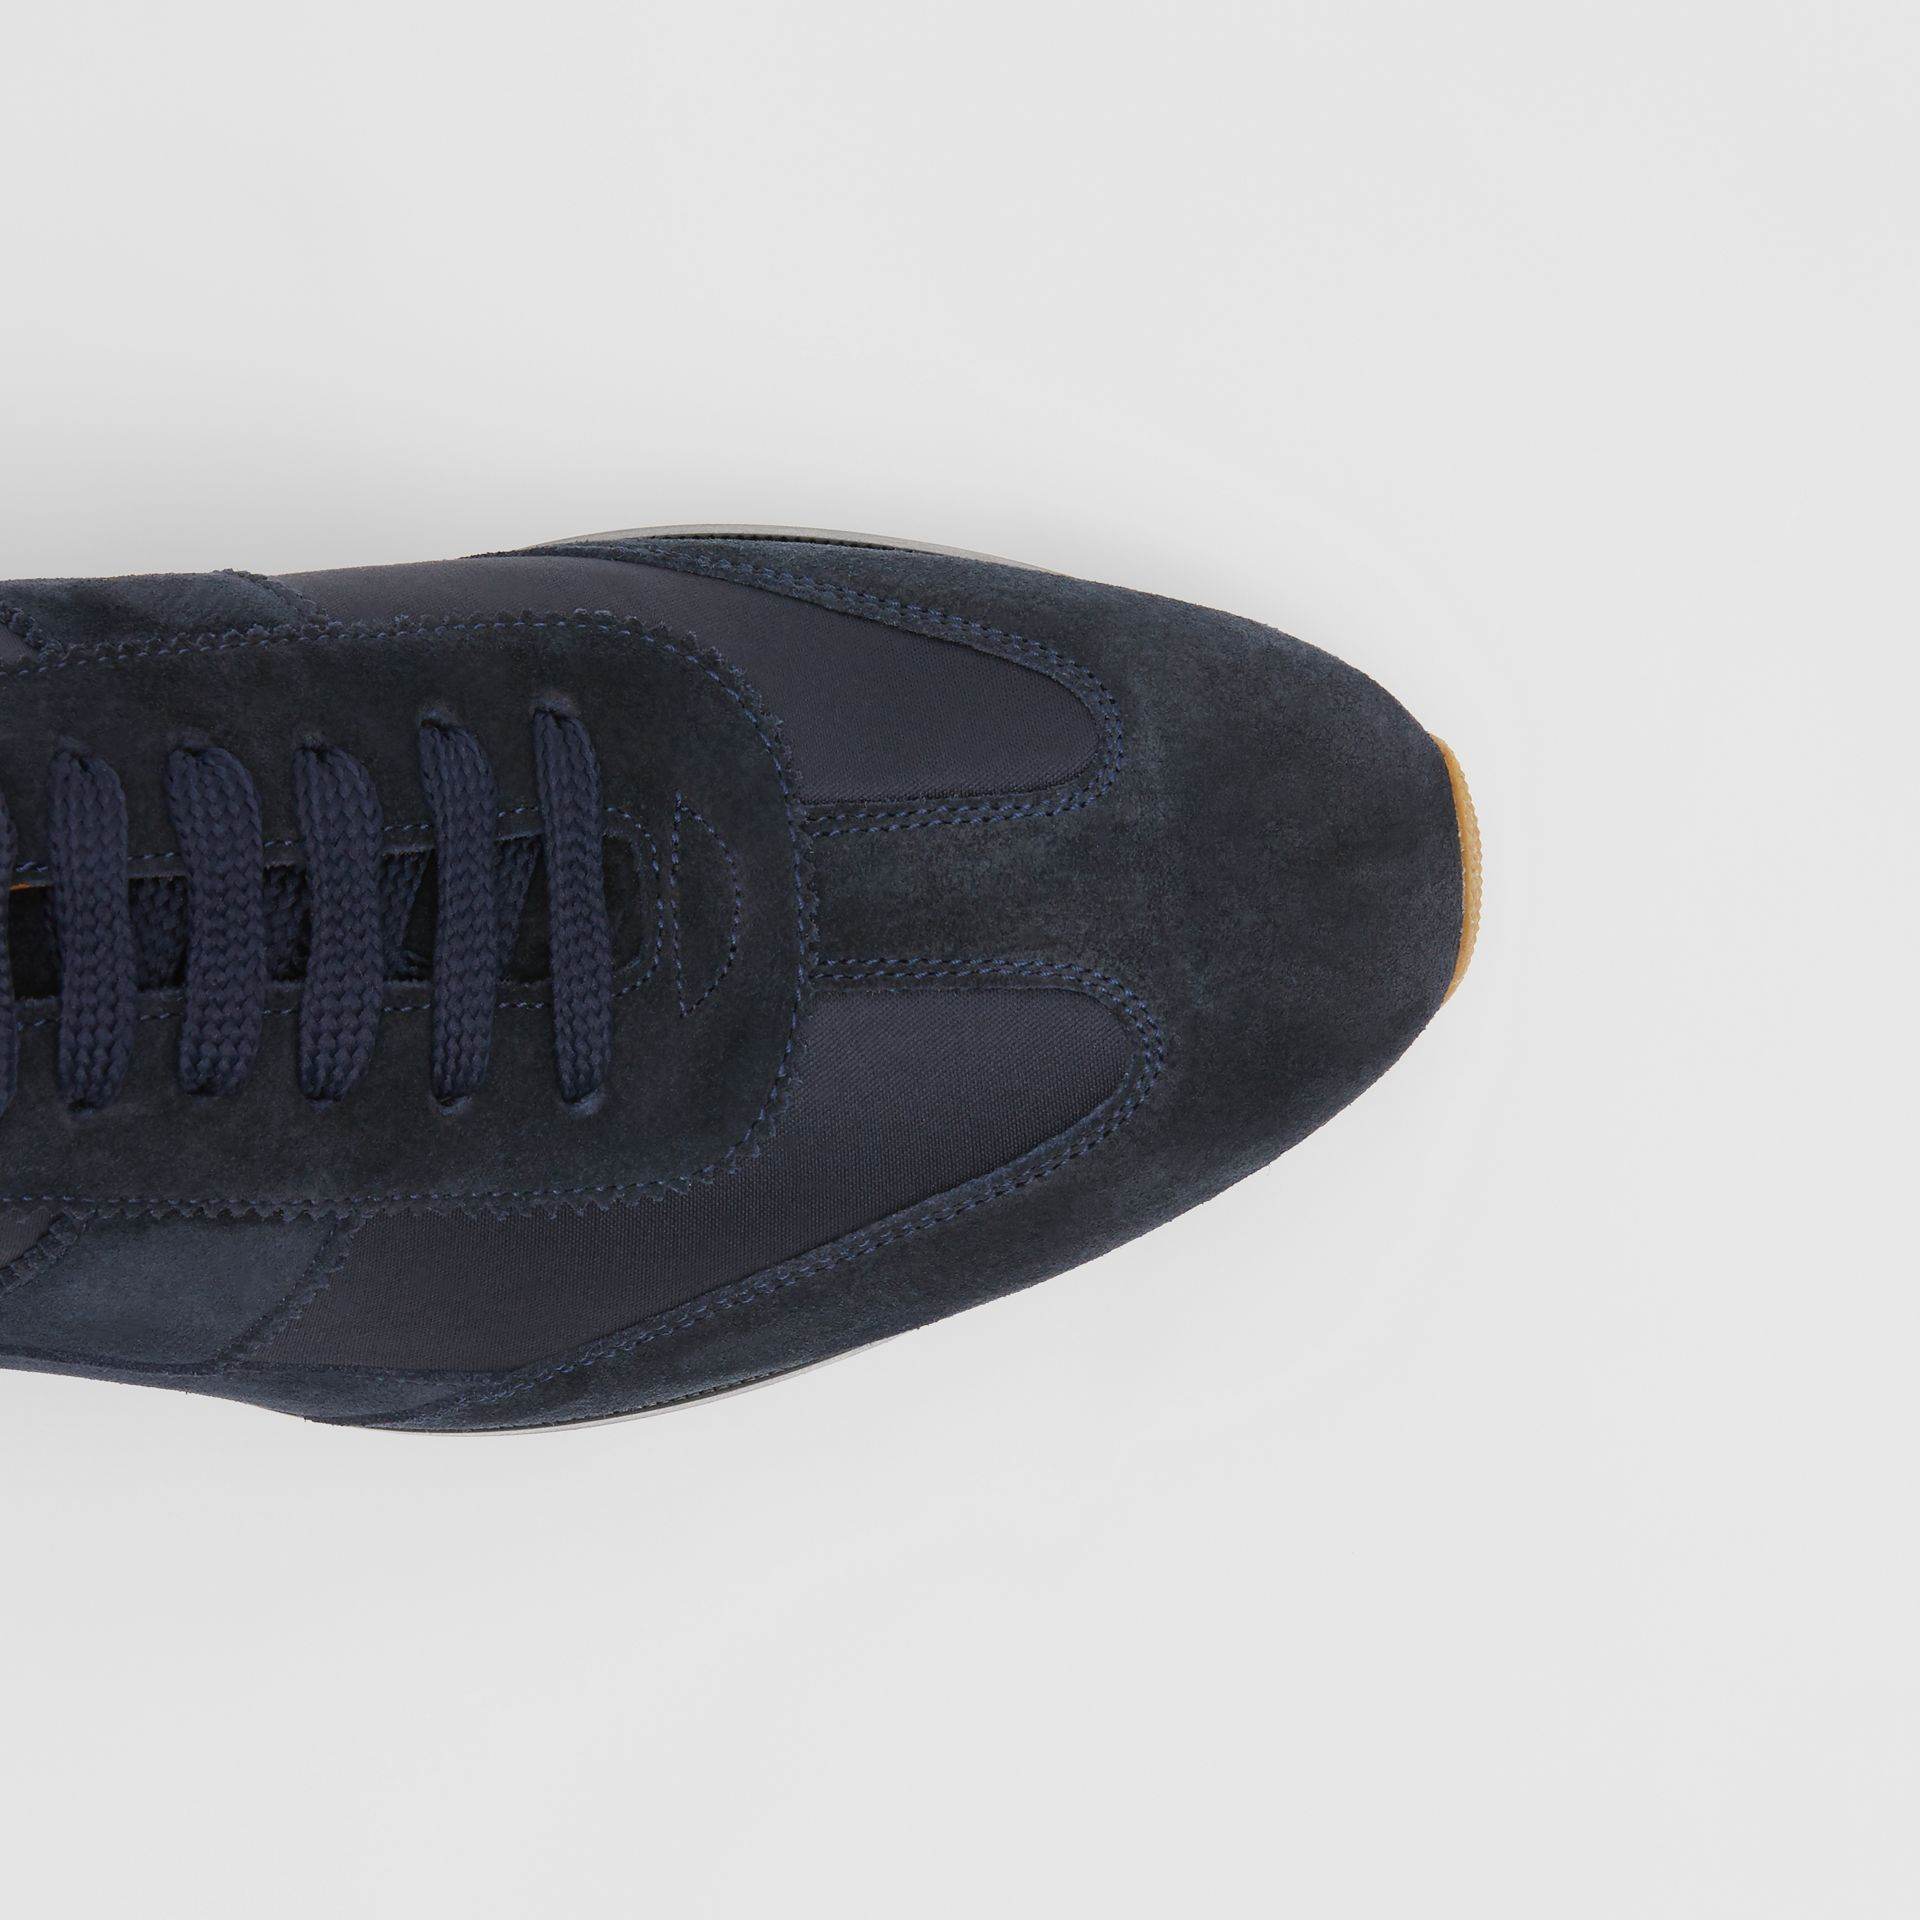 Neoprene Panel Suede Lace-up Shoes in Navy - Men | Burberry - gallery image 1